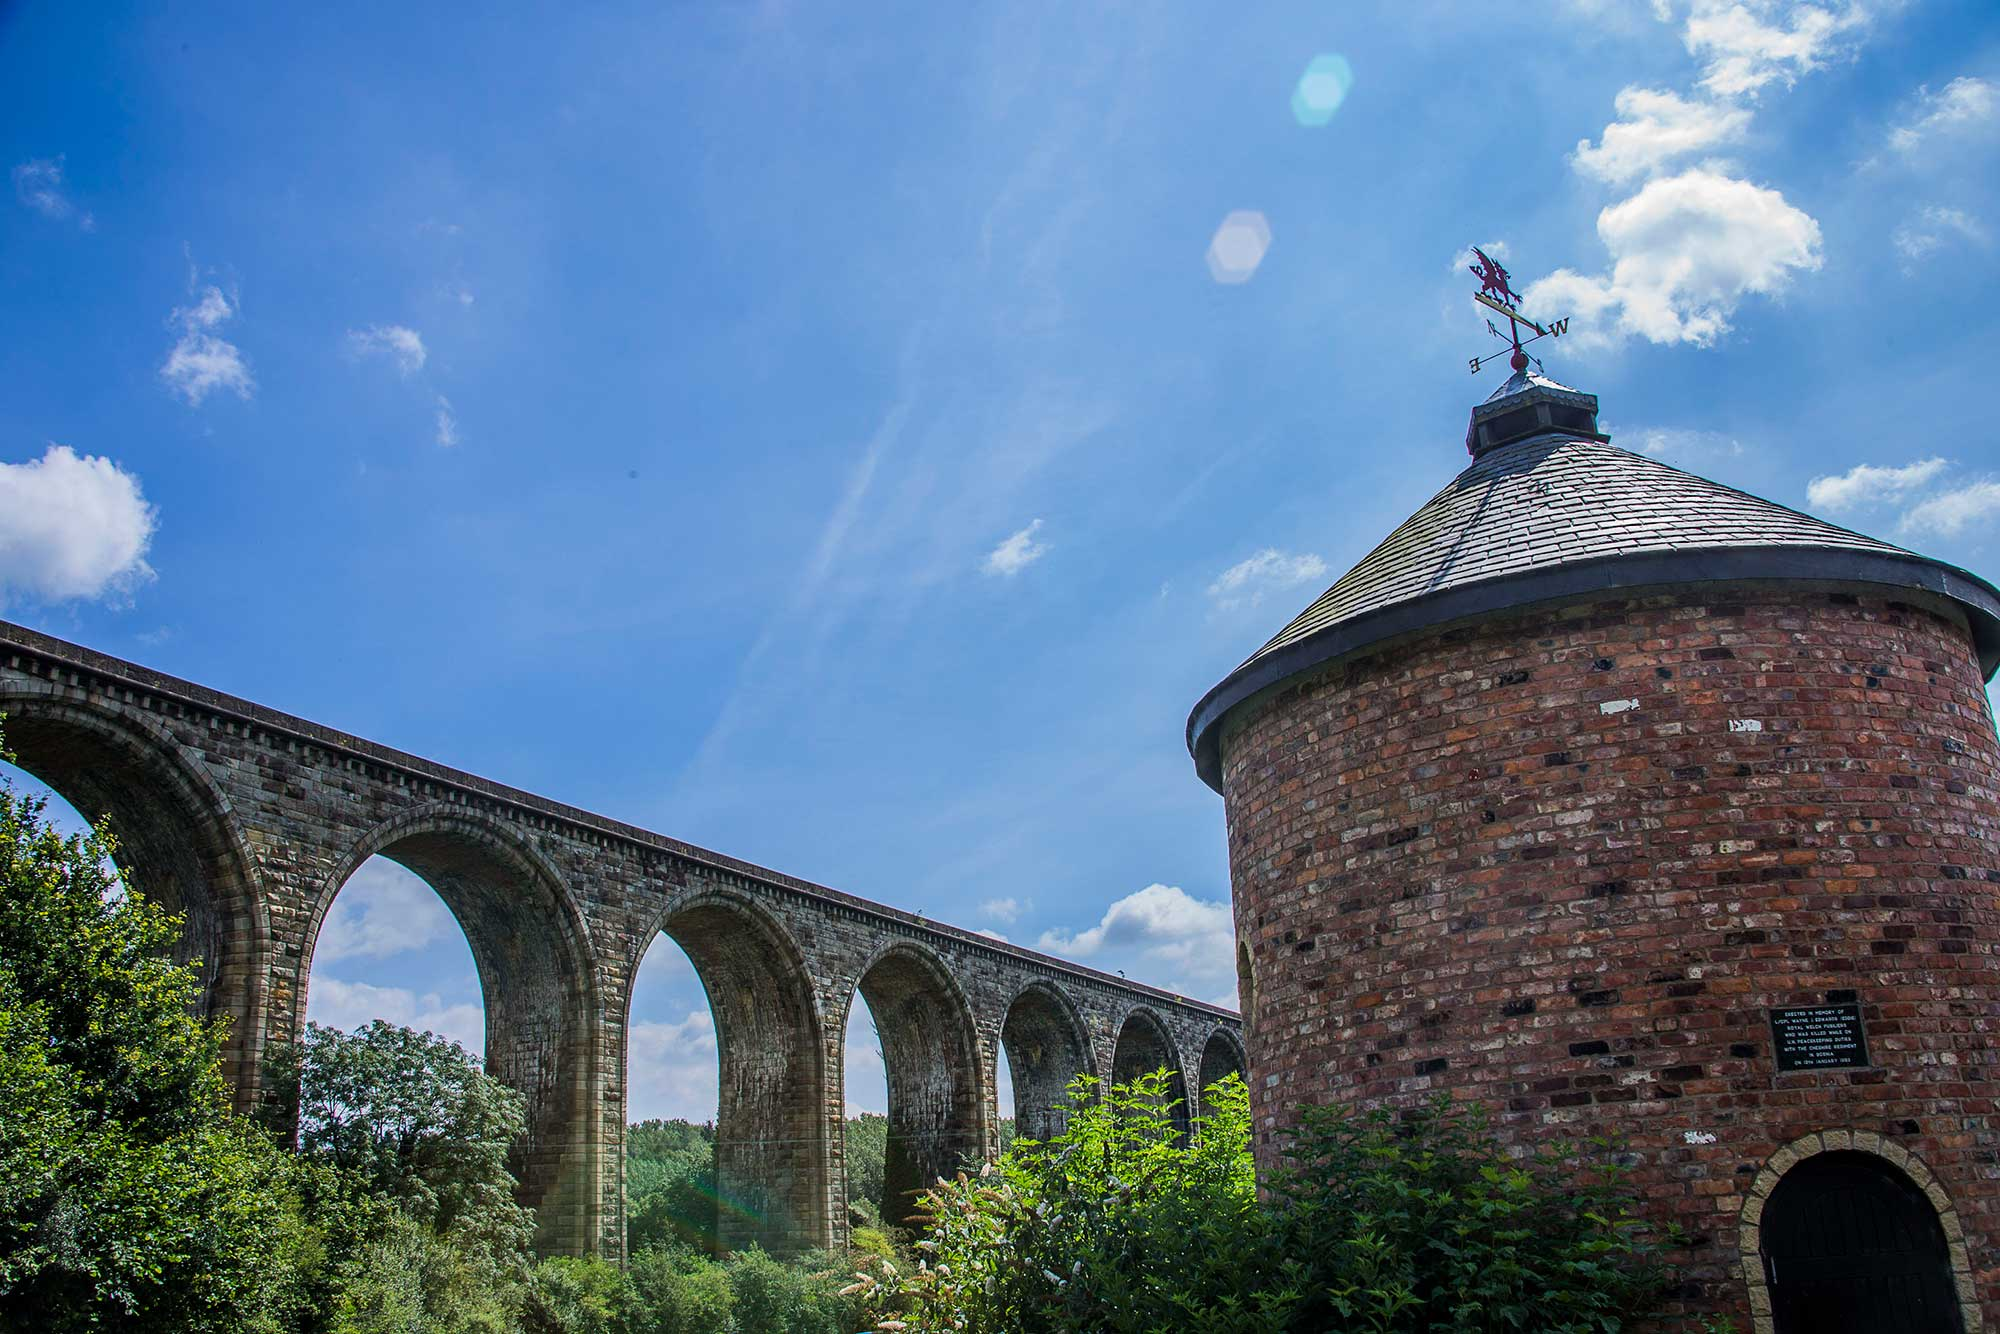 *Cefn Viaduct and roundhouse